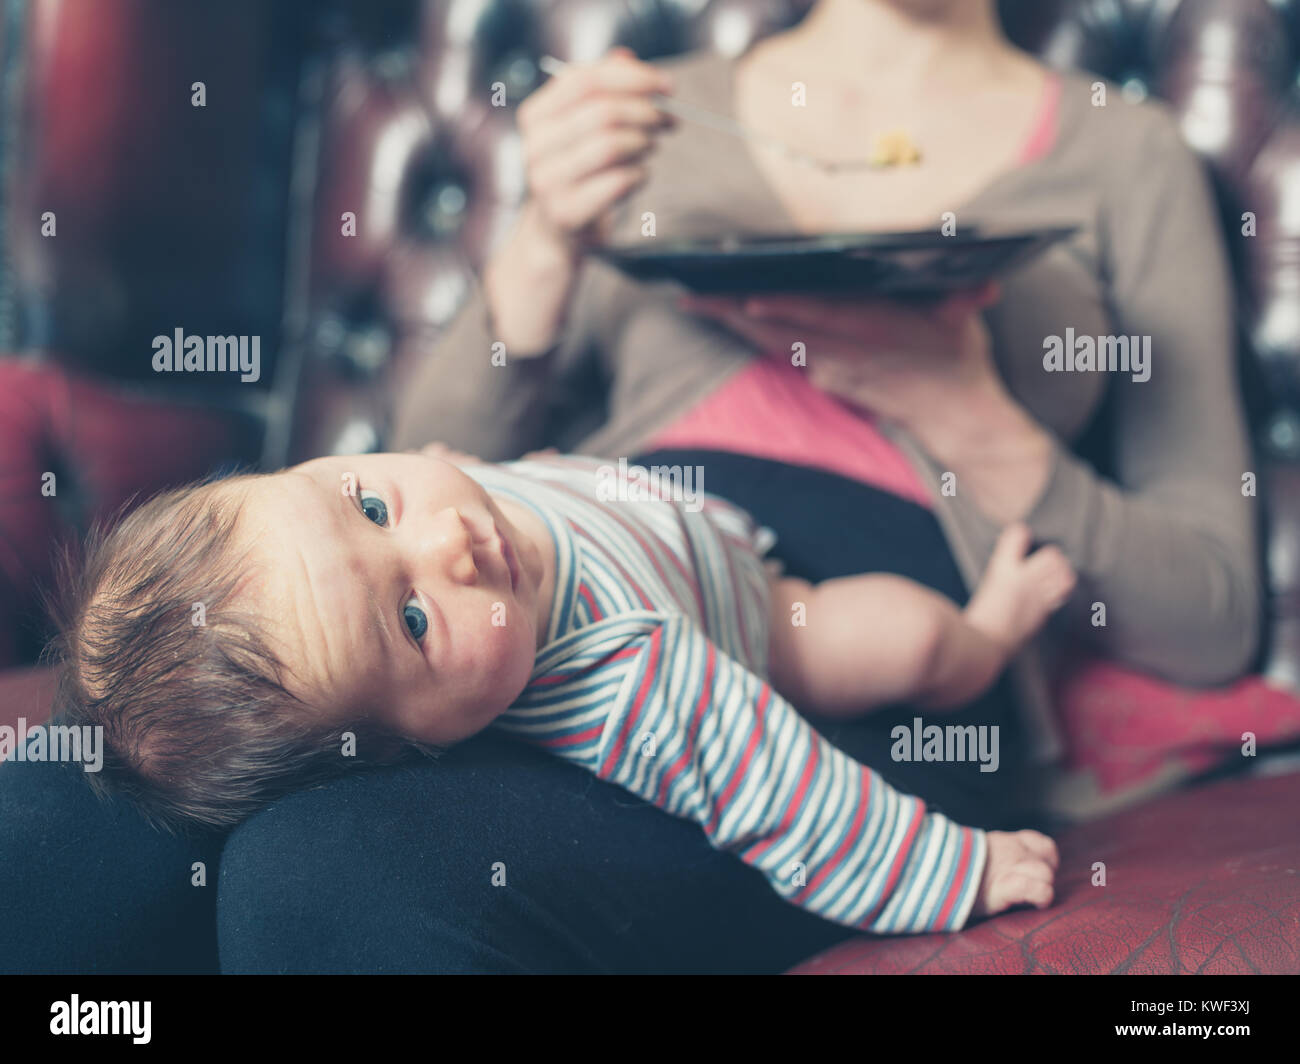 A young mother is sitting on a sofa and is trying to eat her dinner with her baby on her lap - Stock Image